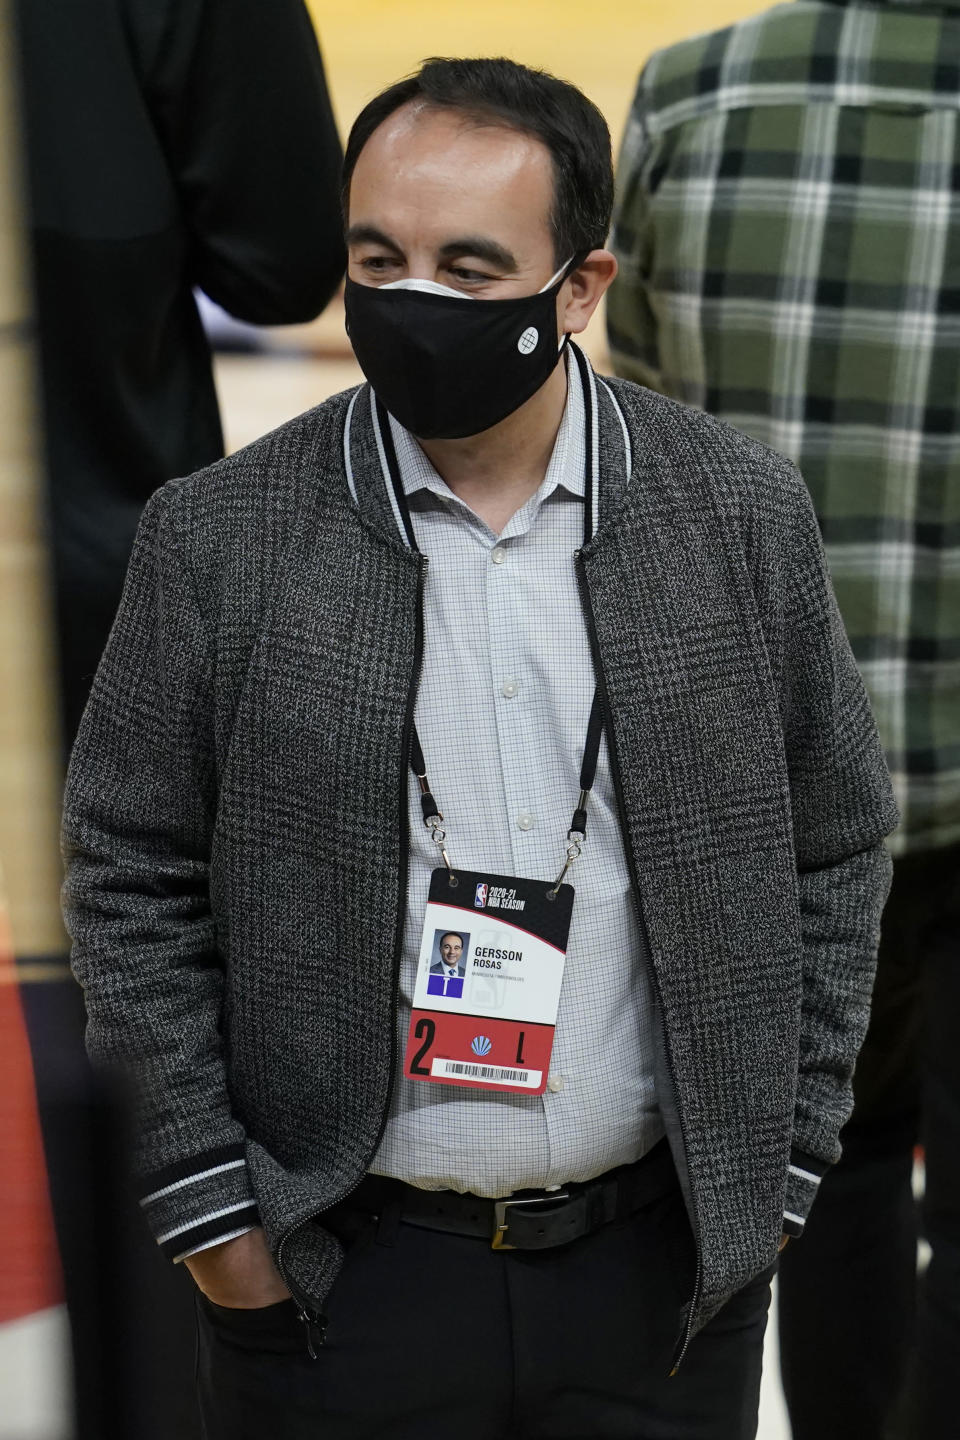 Minnesota Timberwolves president of basketball operations Gersson Rosas before an NBA basketball game against the Golden State Warriors in San Francisco, Wednesday, Jan. 27, 2021. (AP Photo/Jeff Chiu)